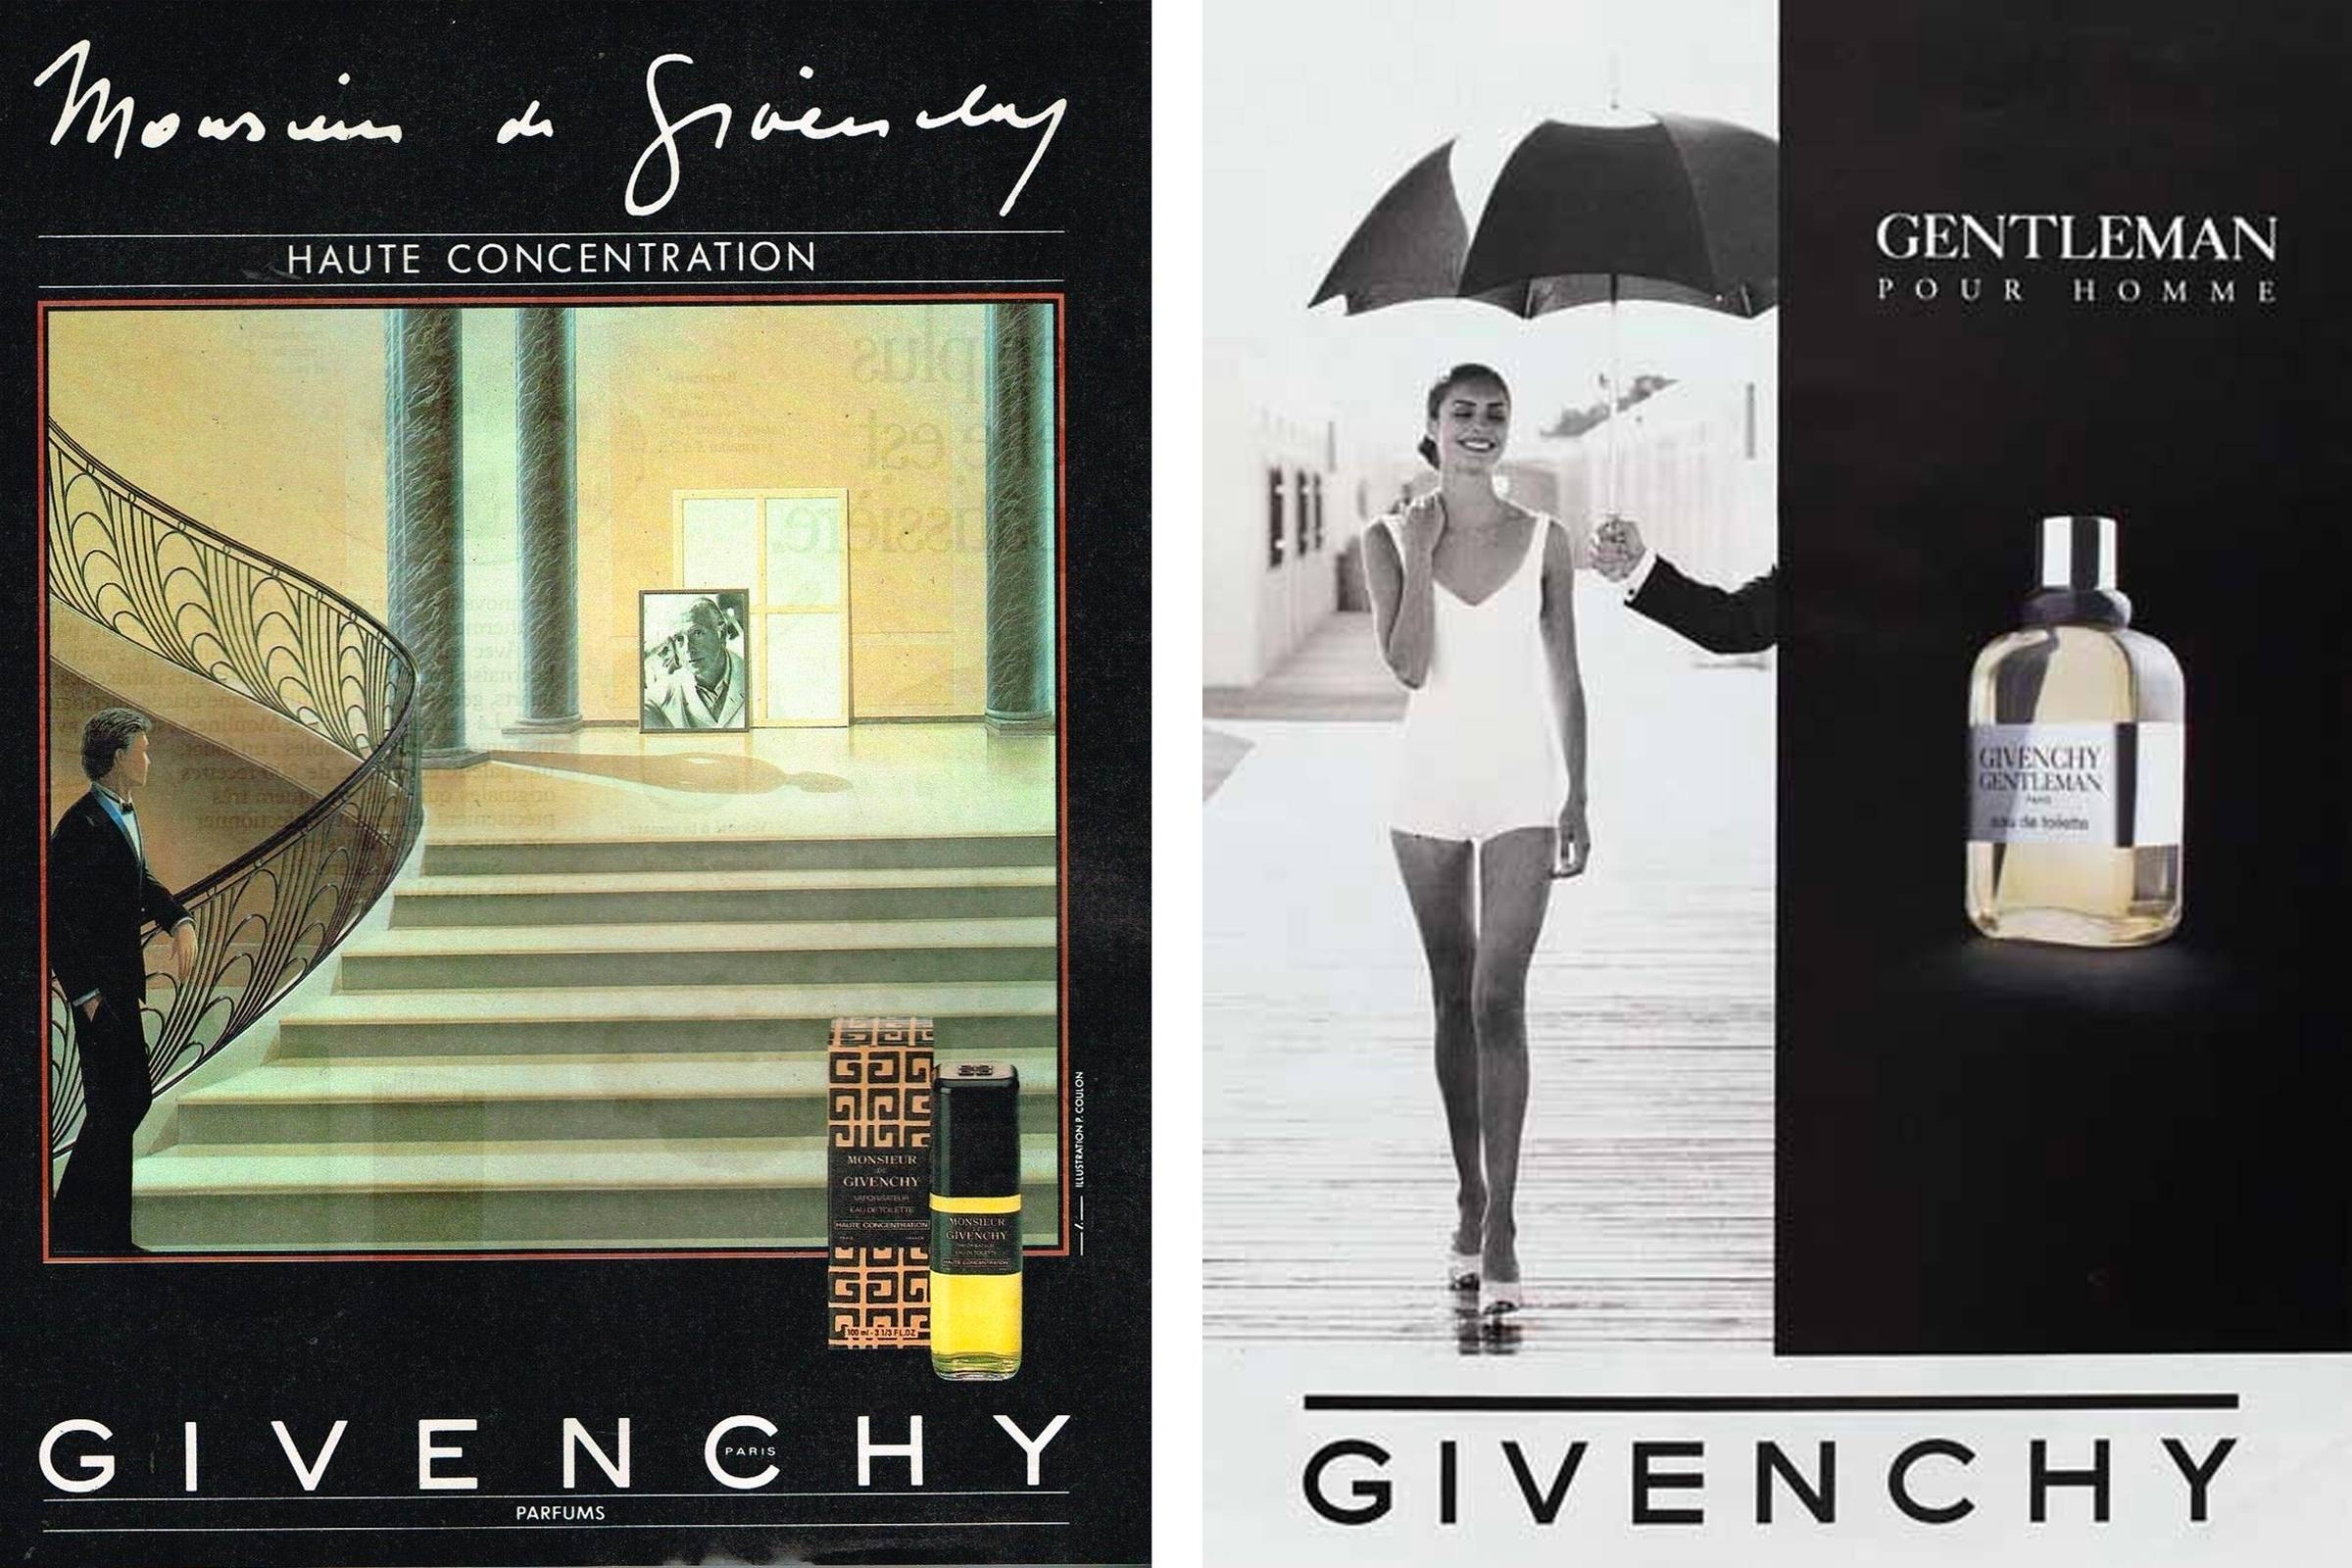 Monsieur Givenchy fragrance ad from 1985 (left); Givenchy Gentleman Pour Homme fragrance ad from 1987